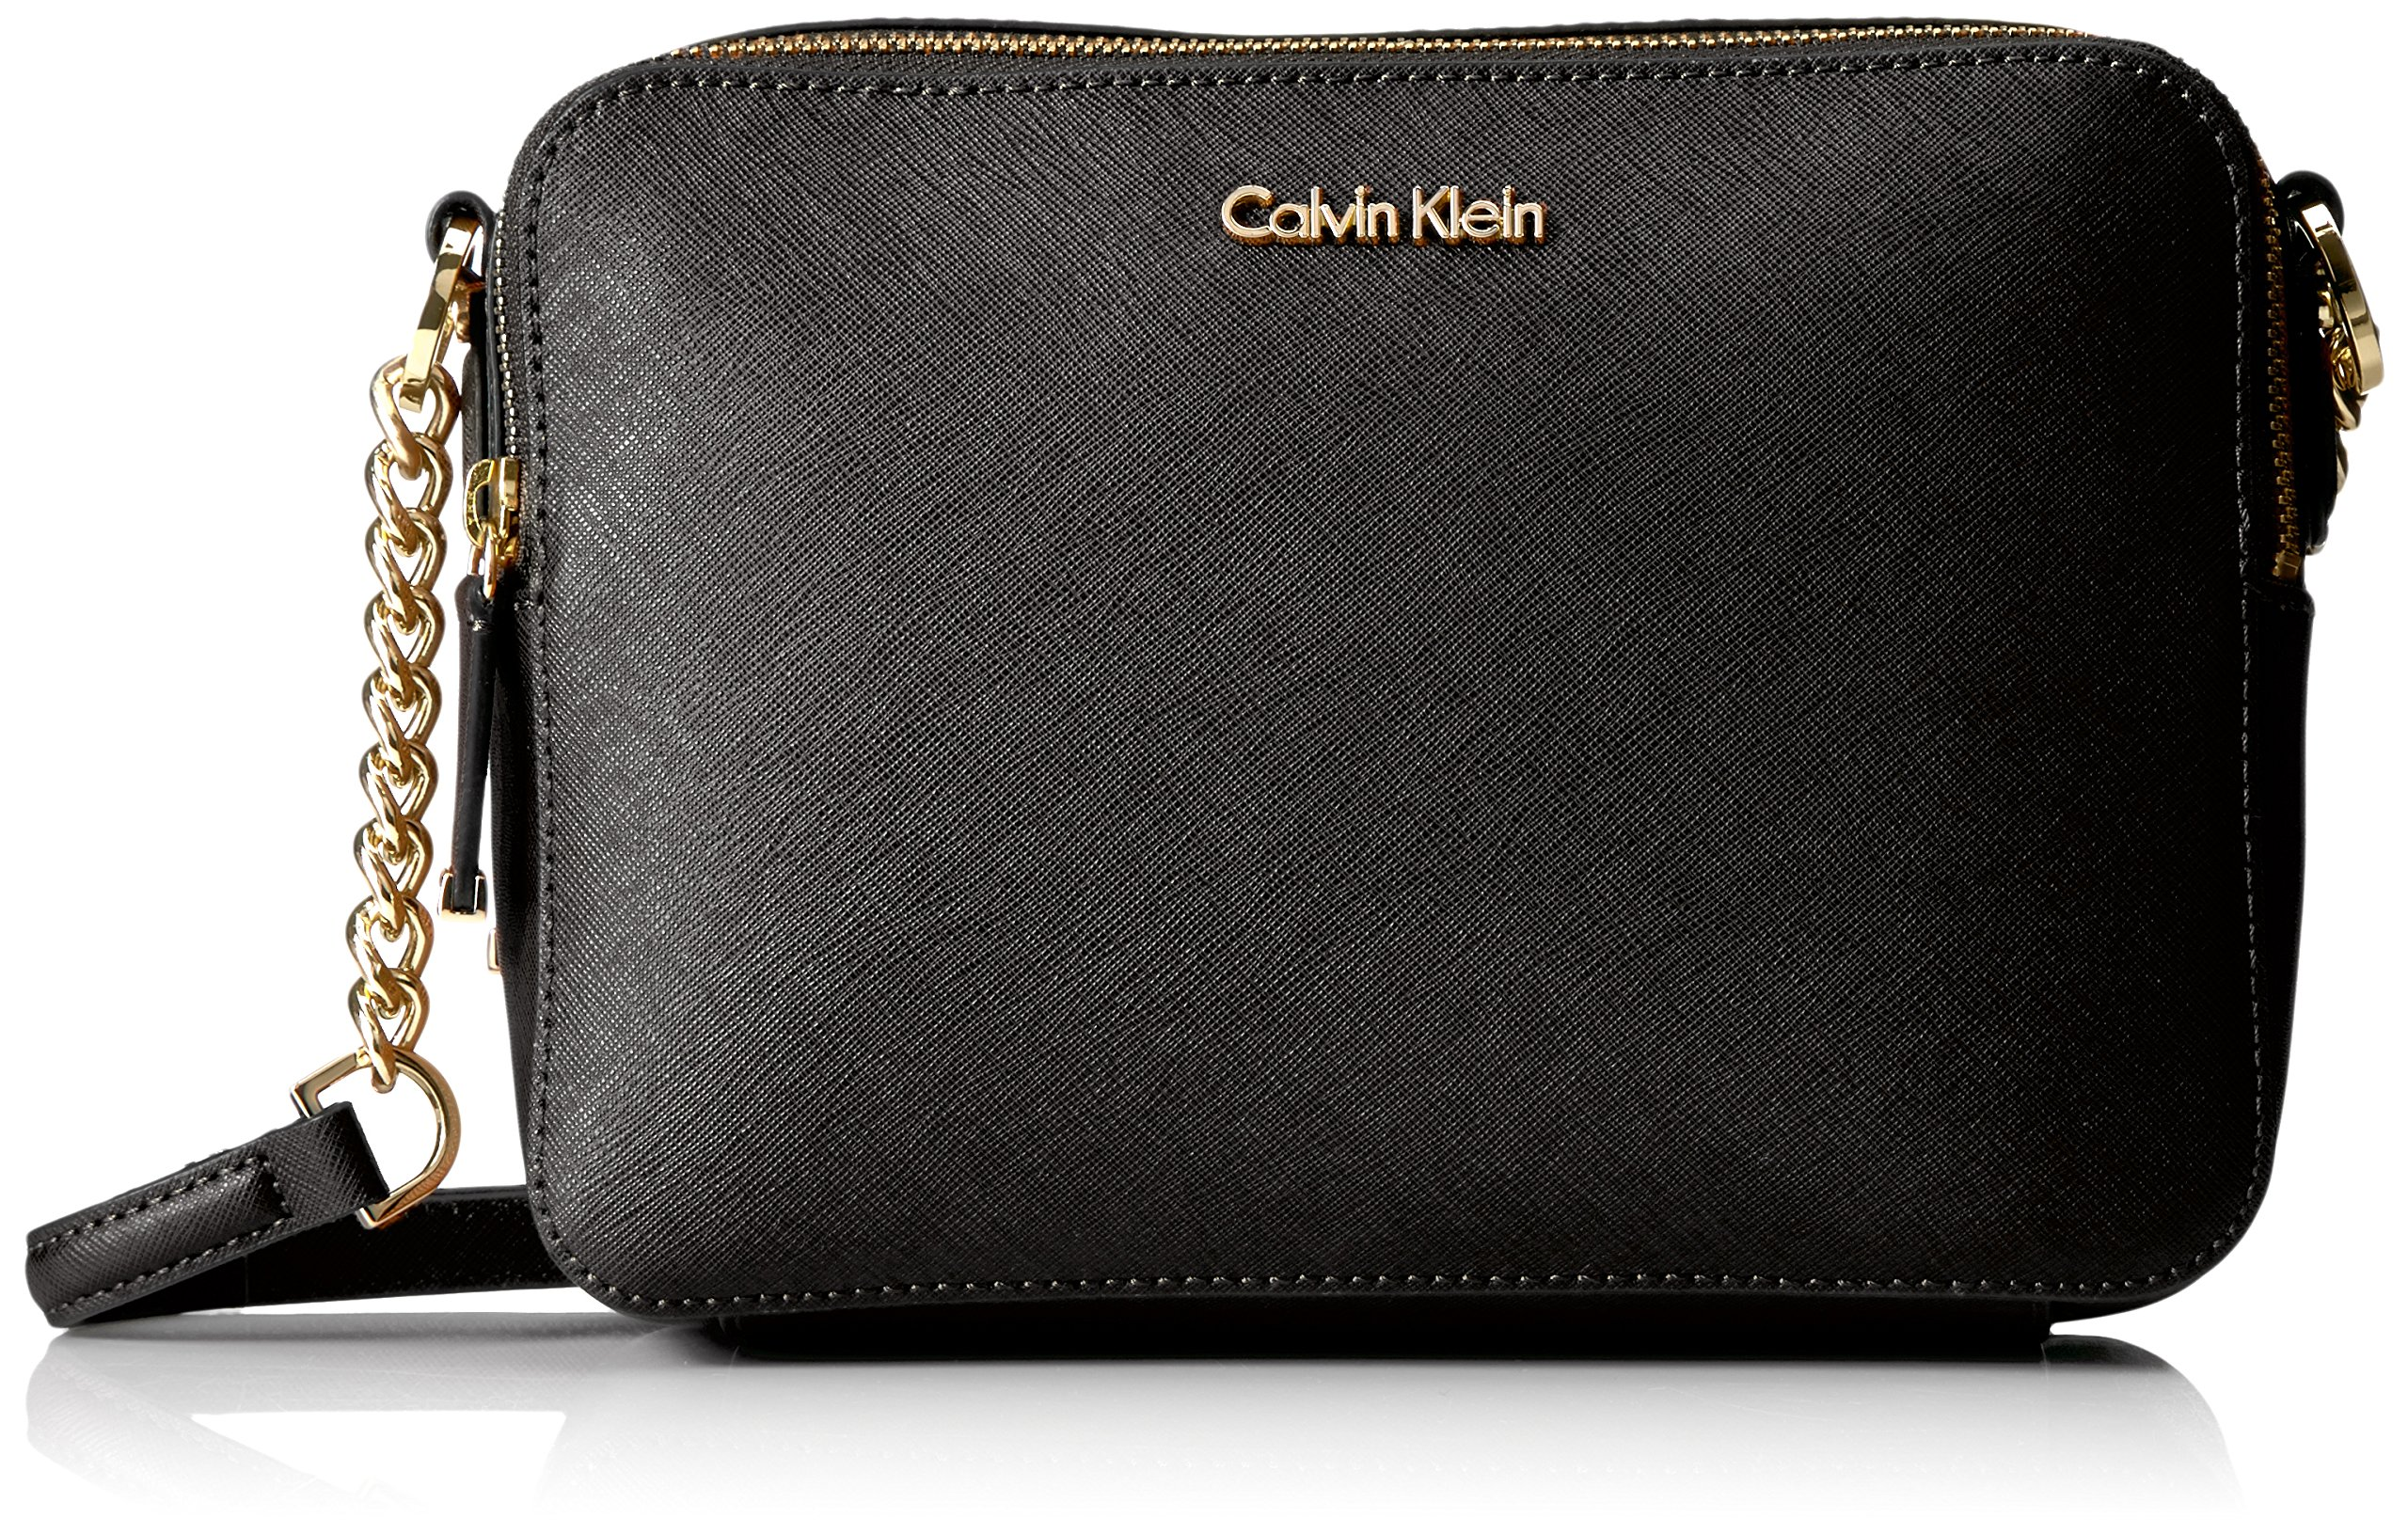 Calvin Klein Key Item Saffiano Camera Bag Crossbody by Calvin Klein